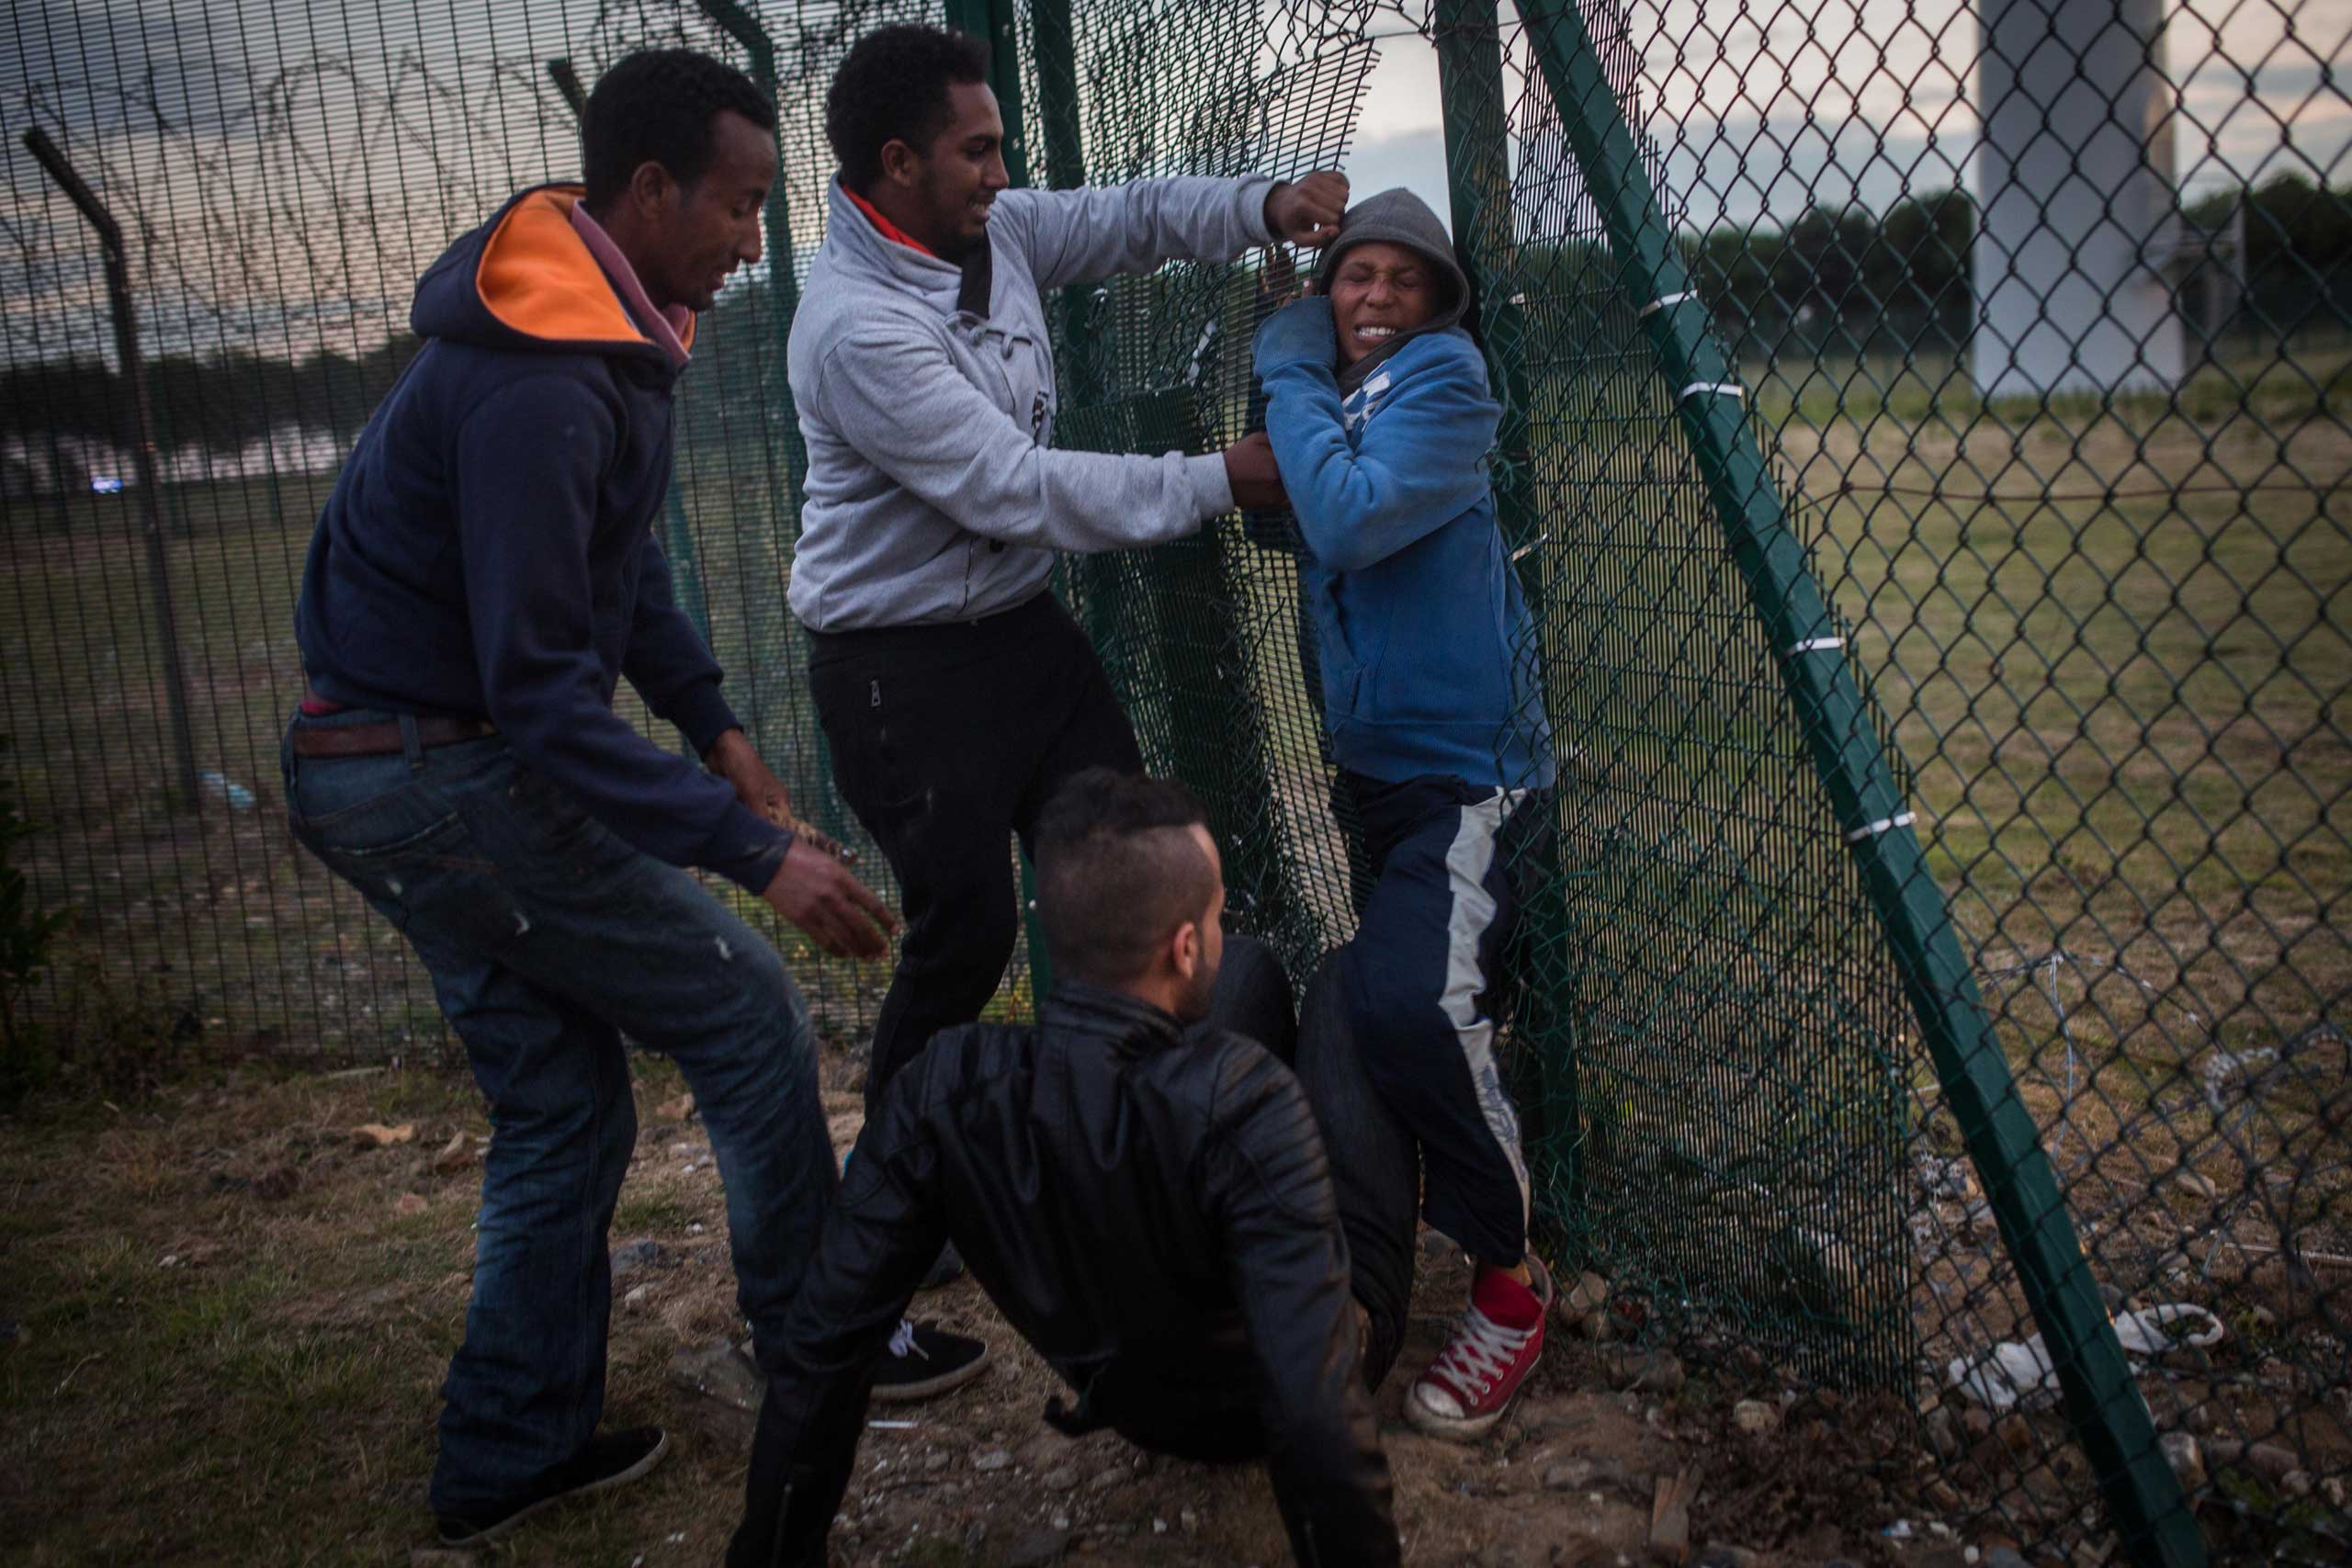 People help a young man squeeze through a gap in a fence near the Eurotunnel terminal in Coquelles in Calais, France, on July 30, 2015.